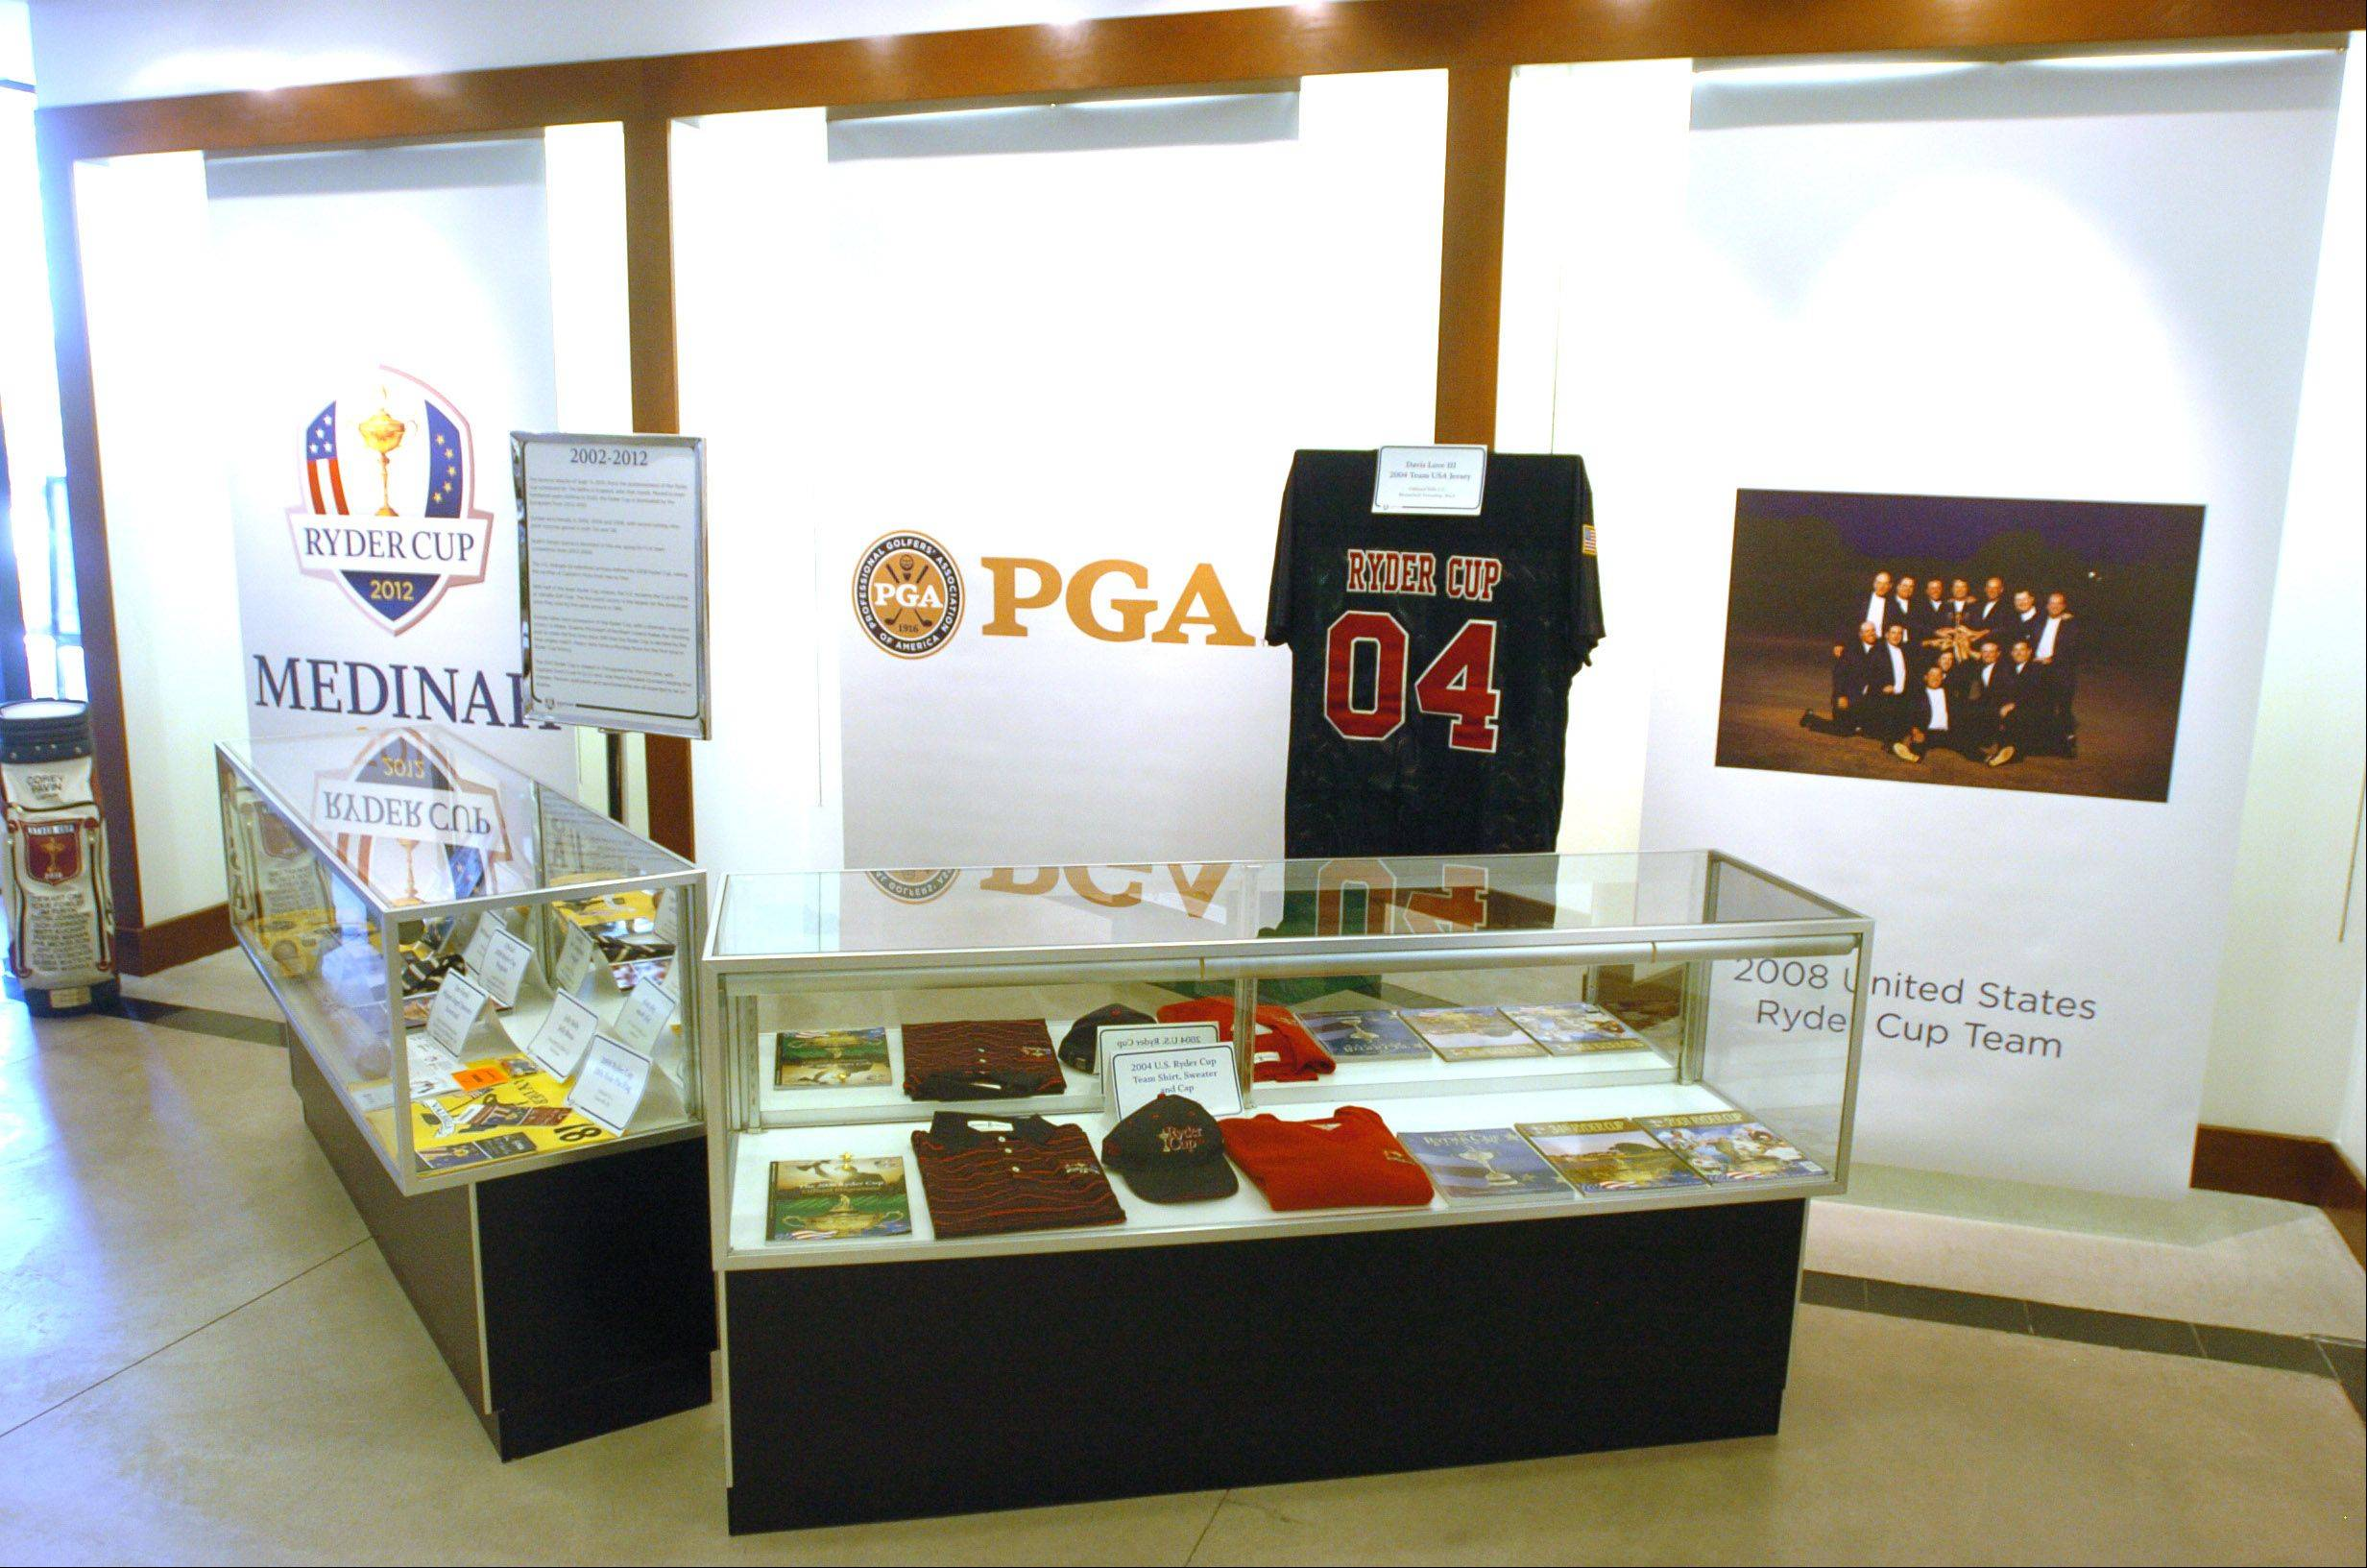 These items on display at the Ryder Cup Exhibit at Oakbrook Center are just part of the 4,000-square-foot historical display. The exhibit is open to the public and free of charge through Sept. 30.